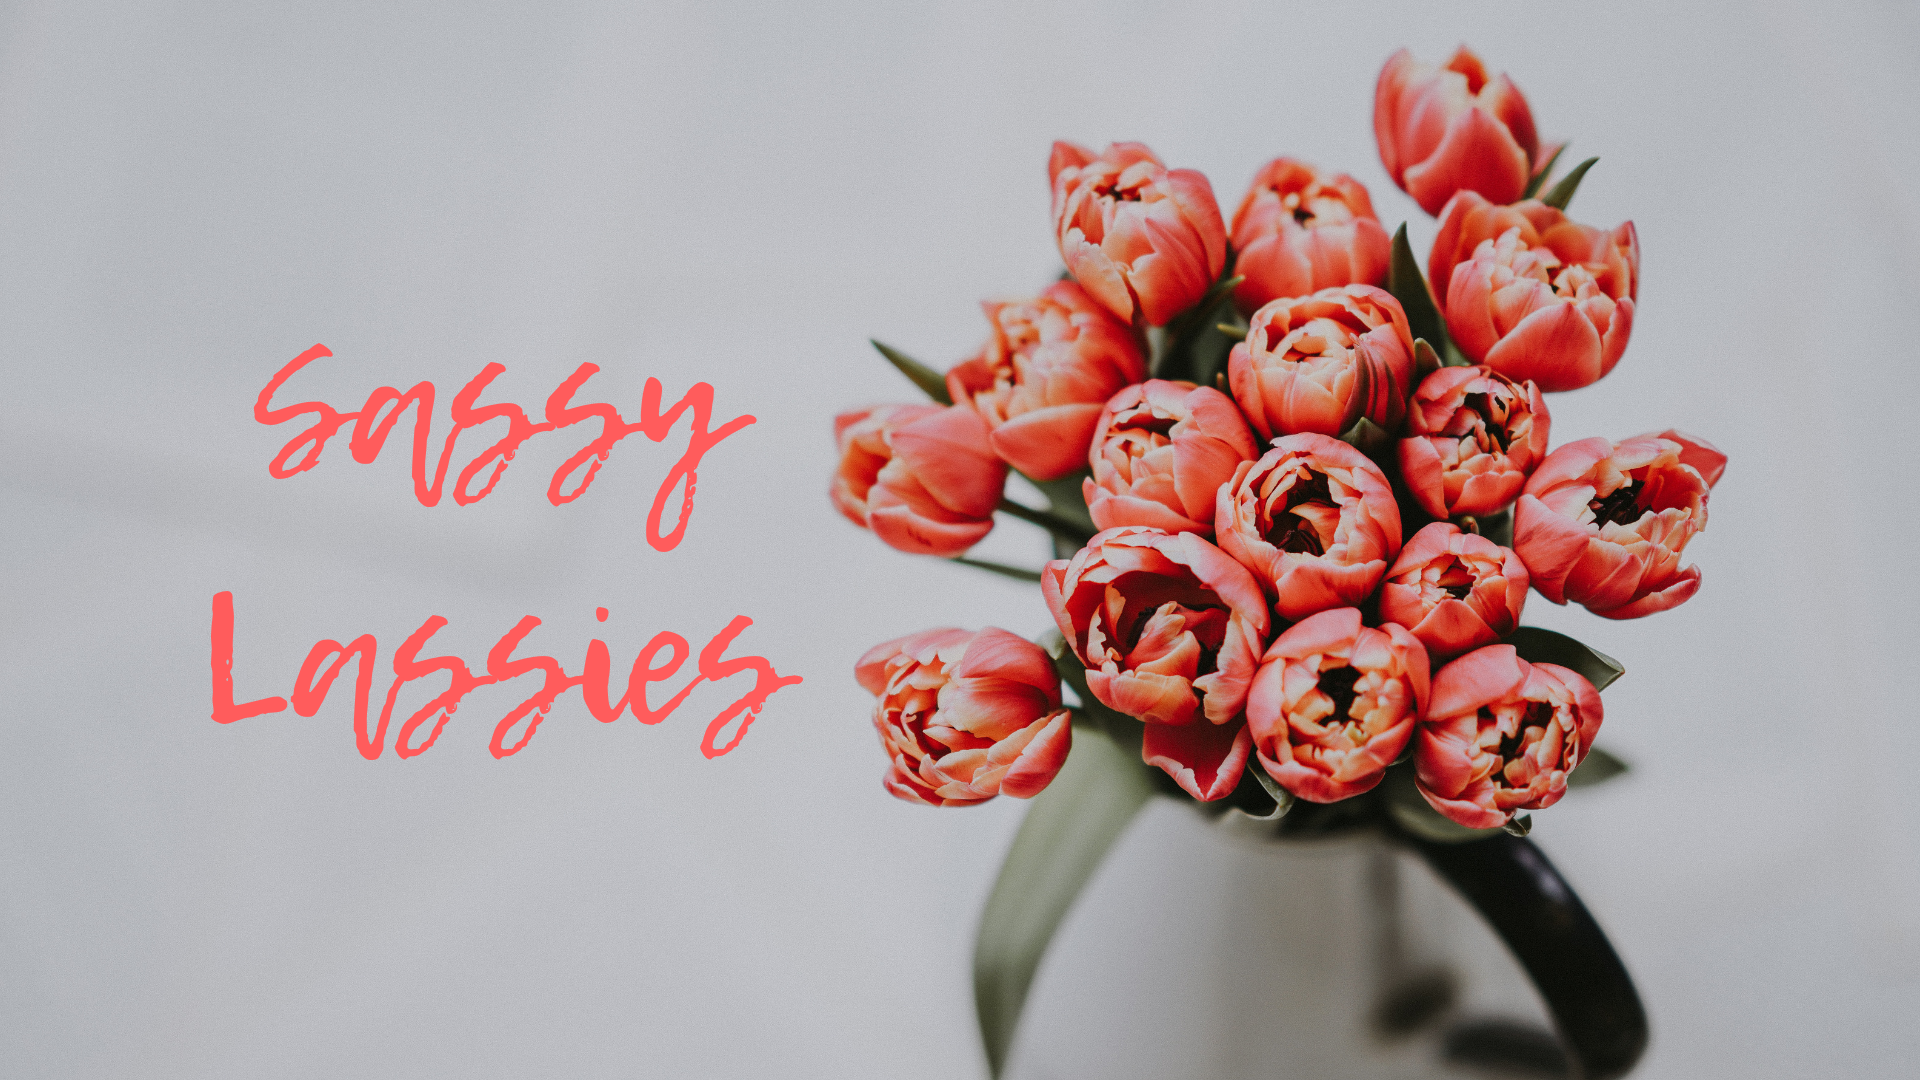 Sassy Lassies - A 50+ women's group which meets once a month in various member's homes for brunch and fellowship. The Sassy Lassies meet on Fridays at 9:30am. Contact Carol Coleson to get connected, ccolson@entouch.net.